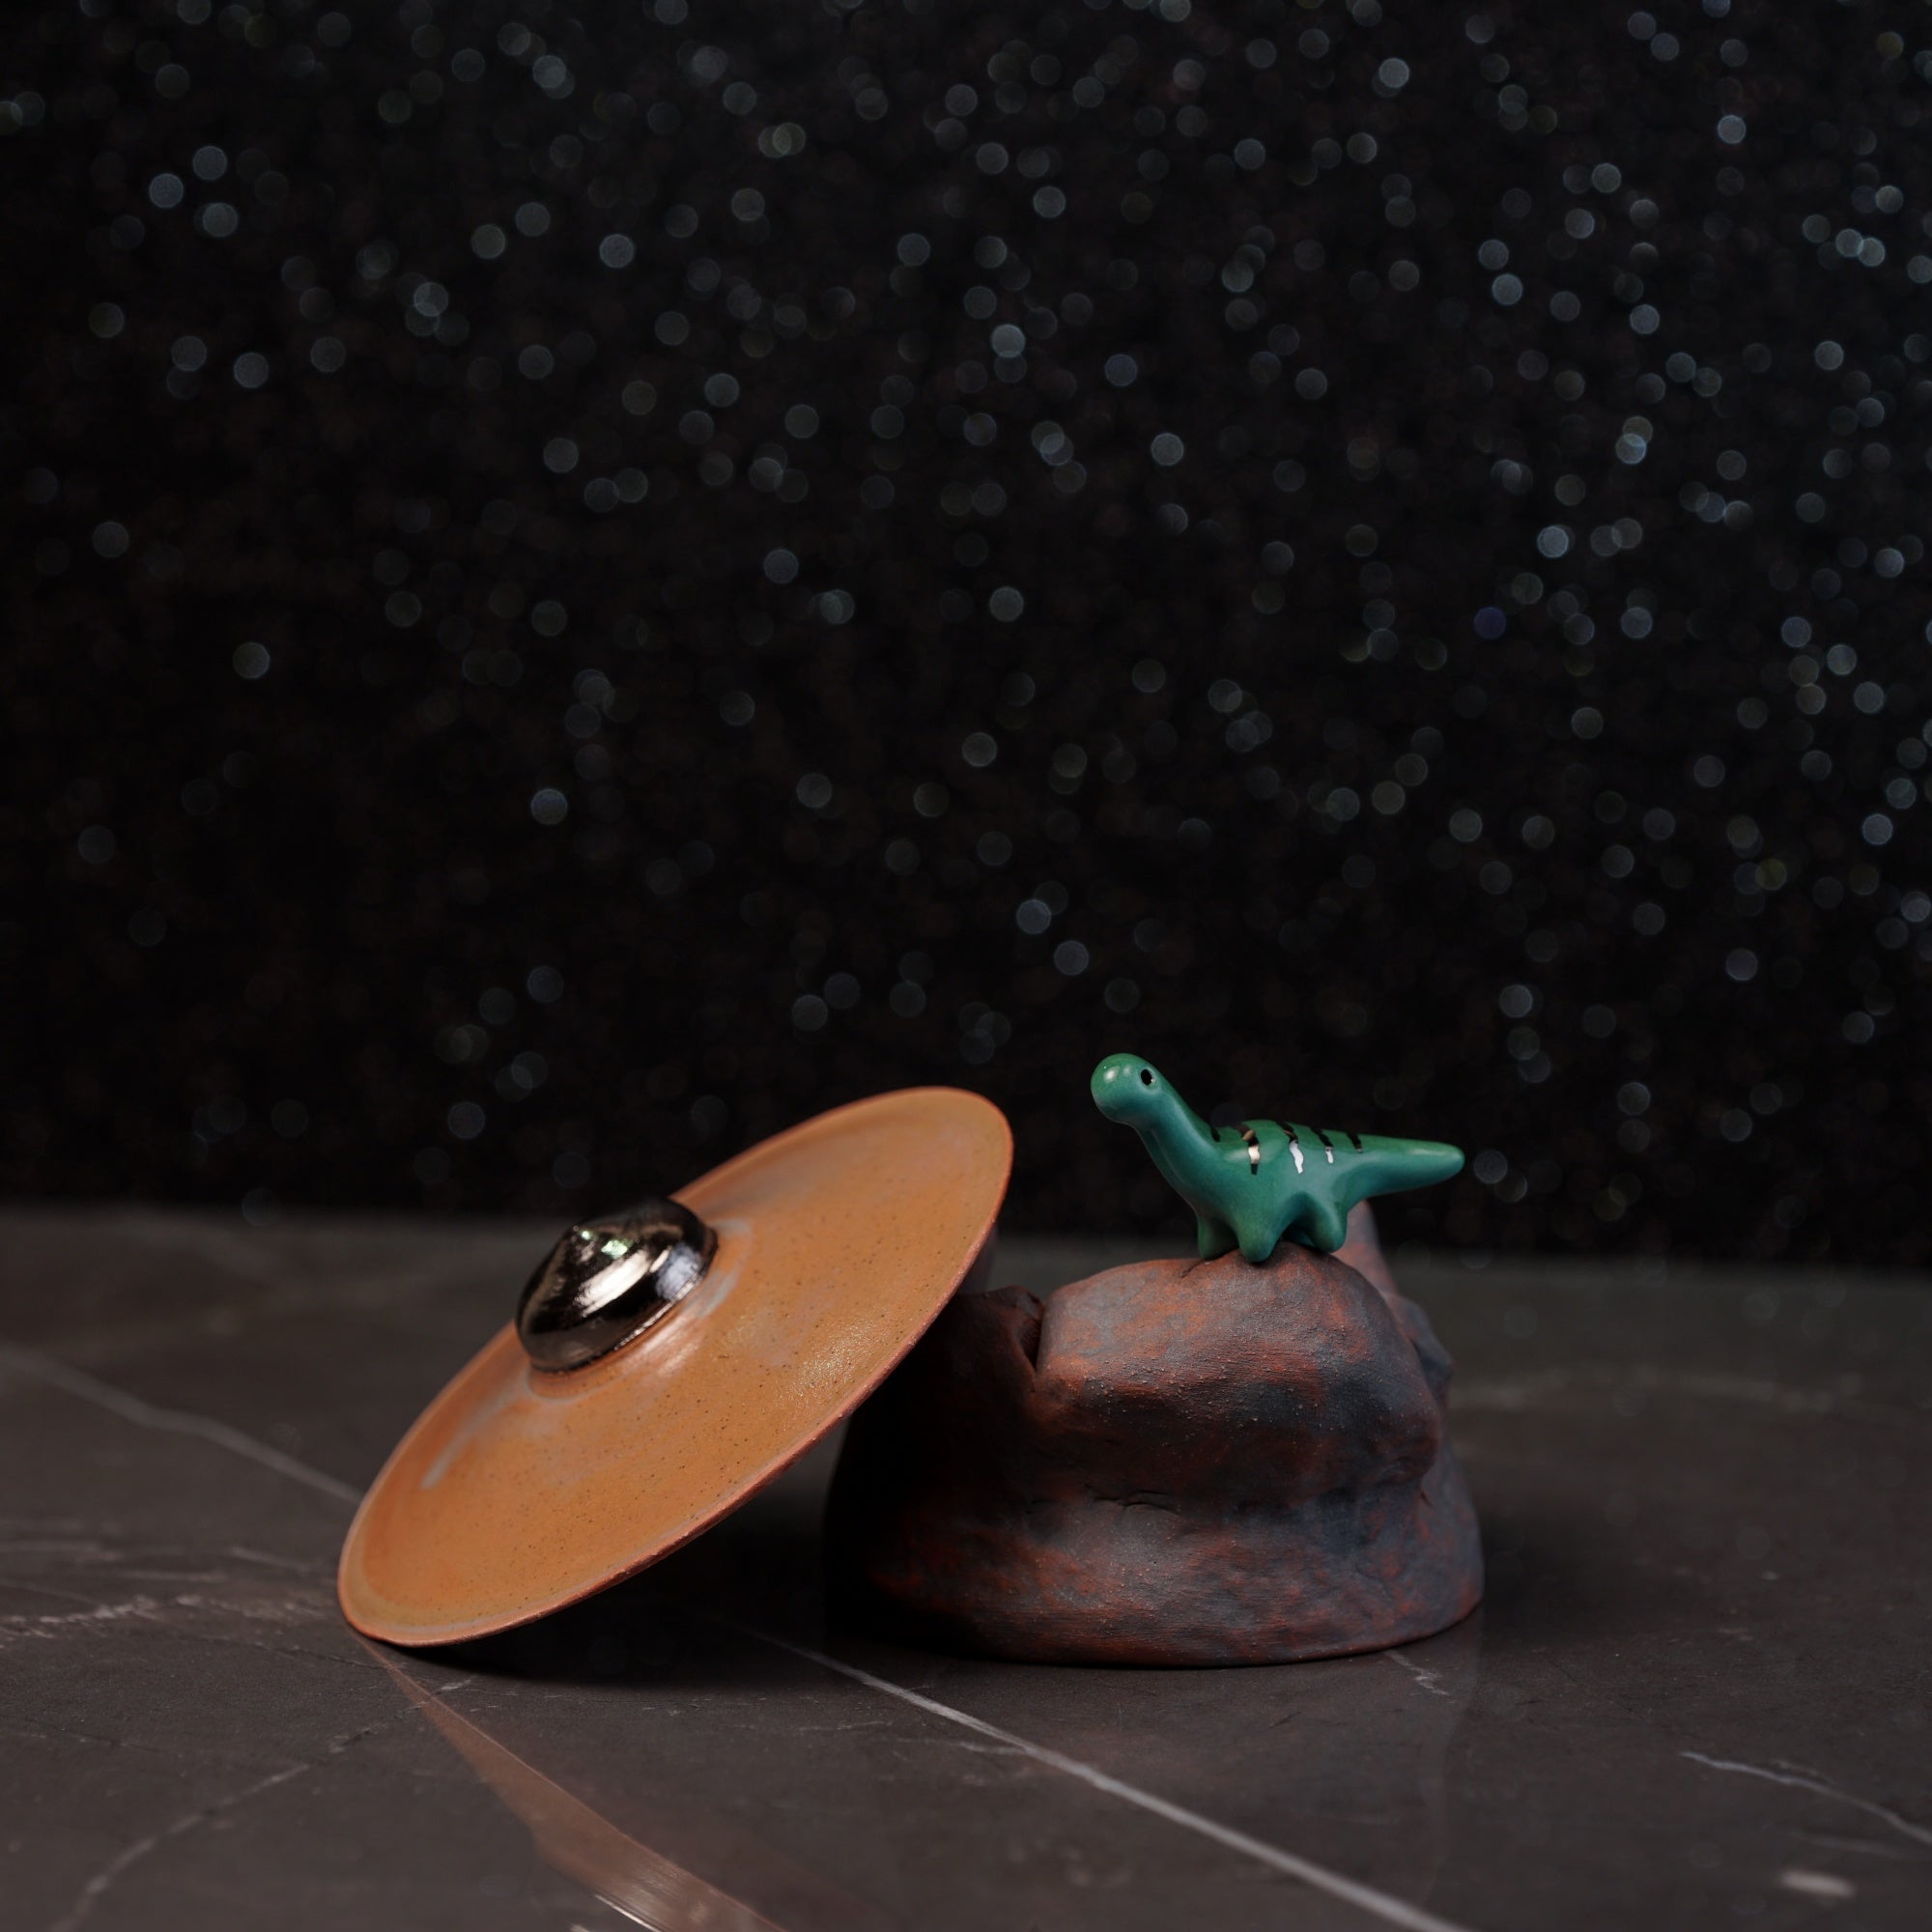 UFO Crash Incense Burner